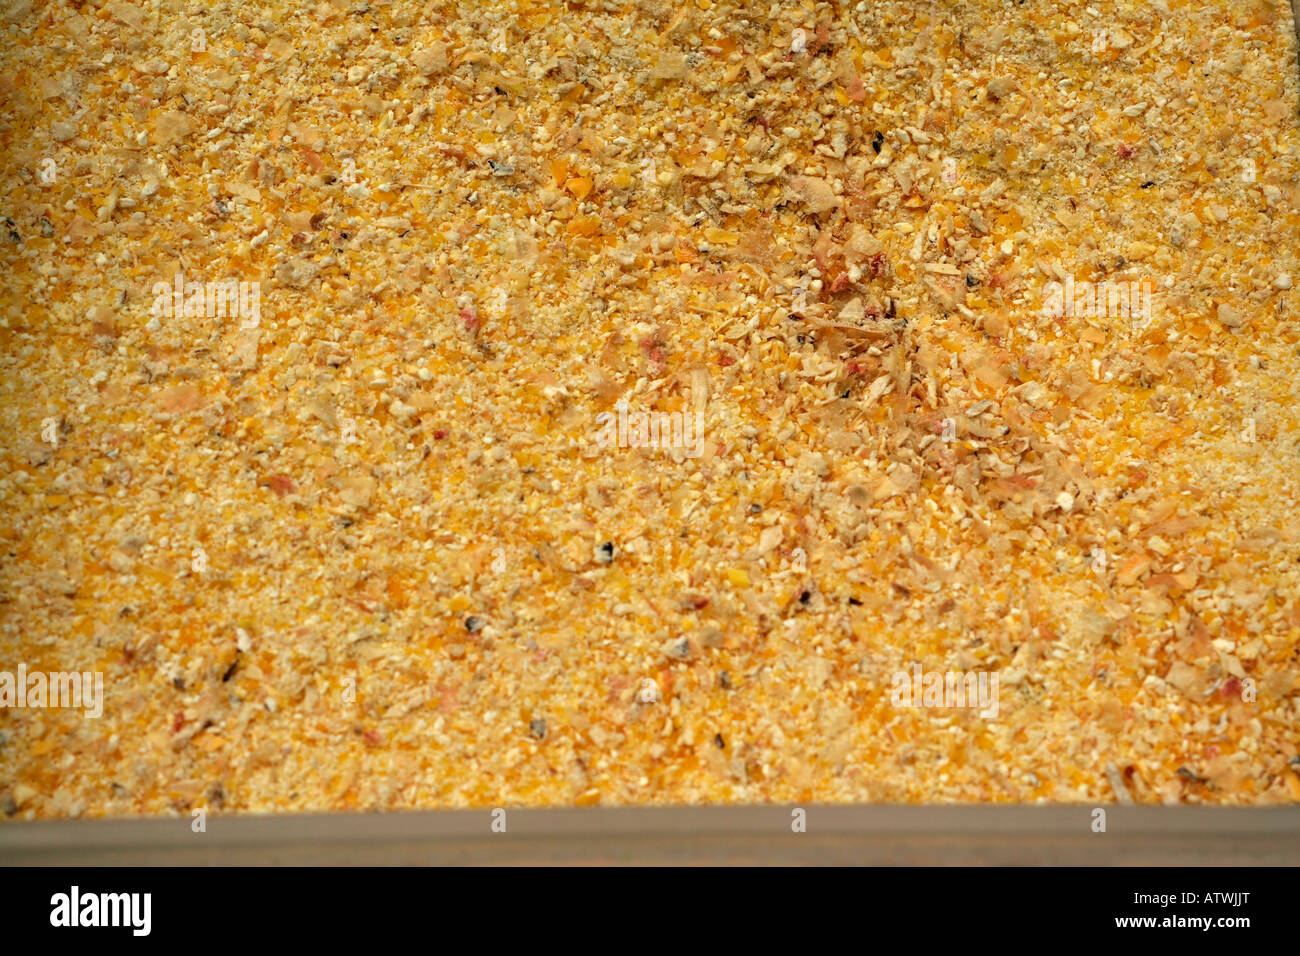 Cracked yellow corn (maize) for animal feed Stock Photo